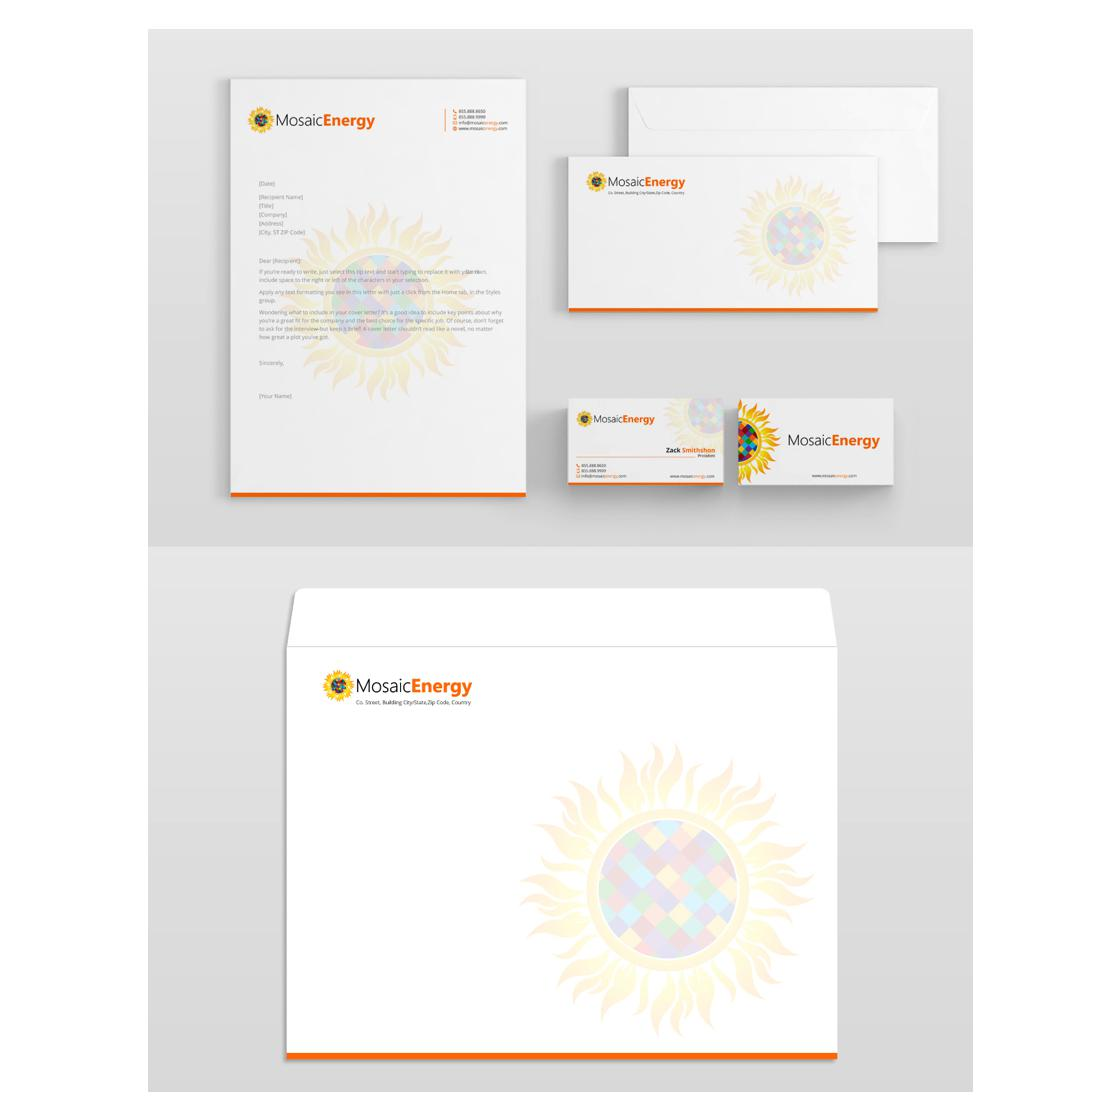 letterhead and stationery designed by AkGraphics